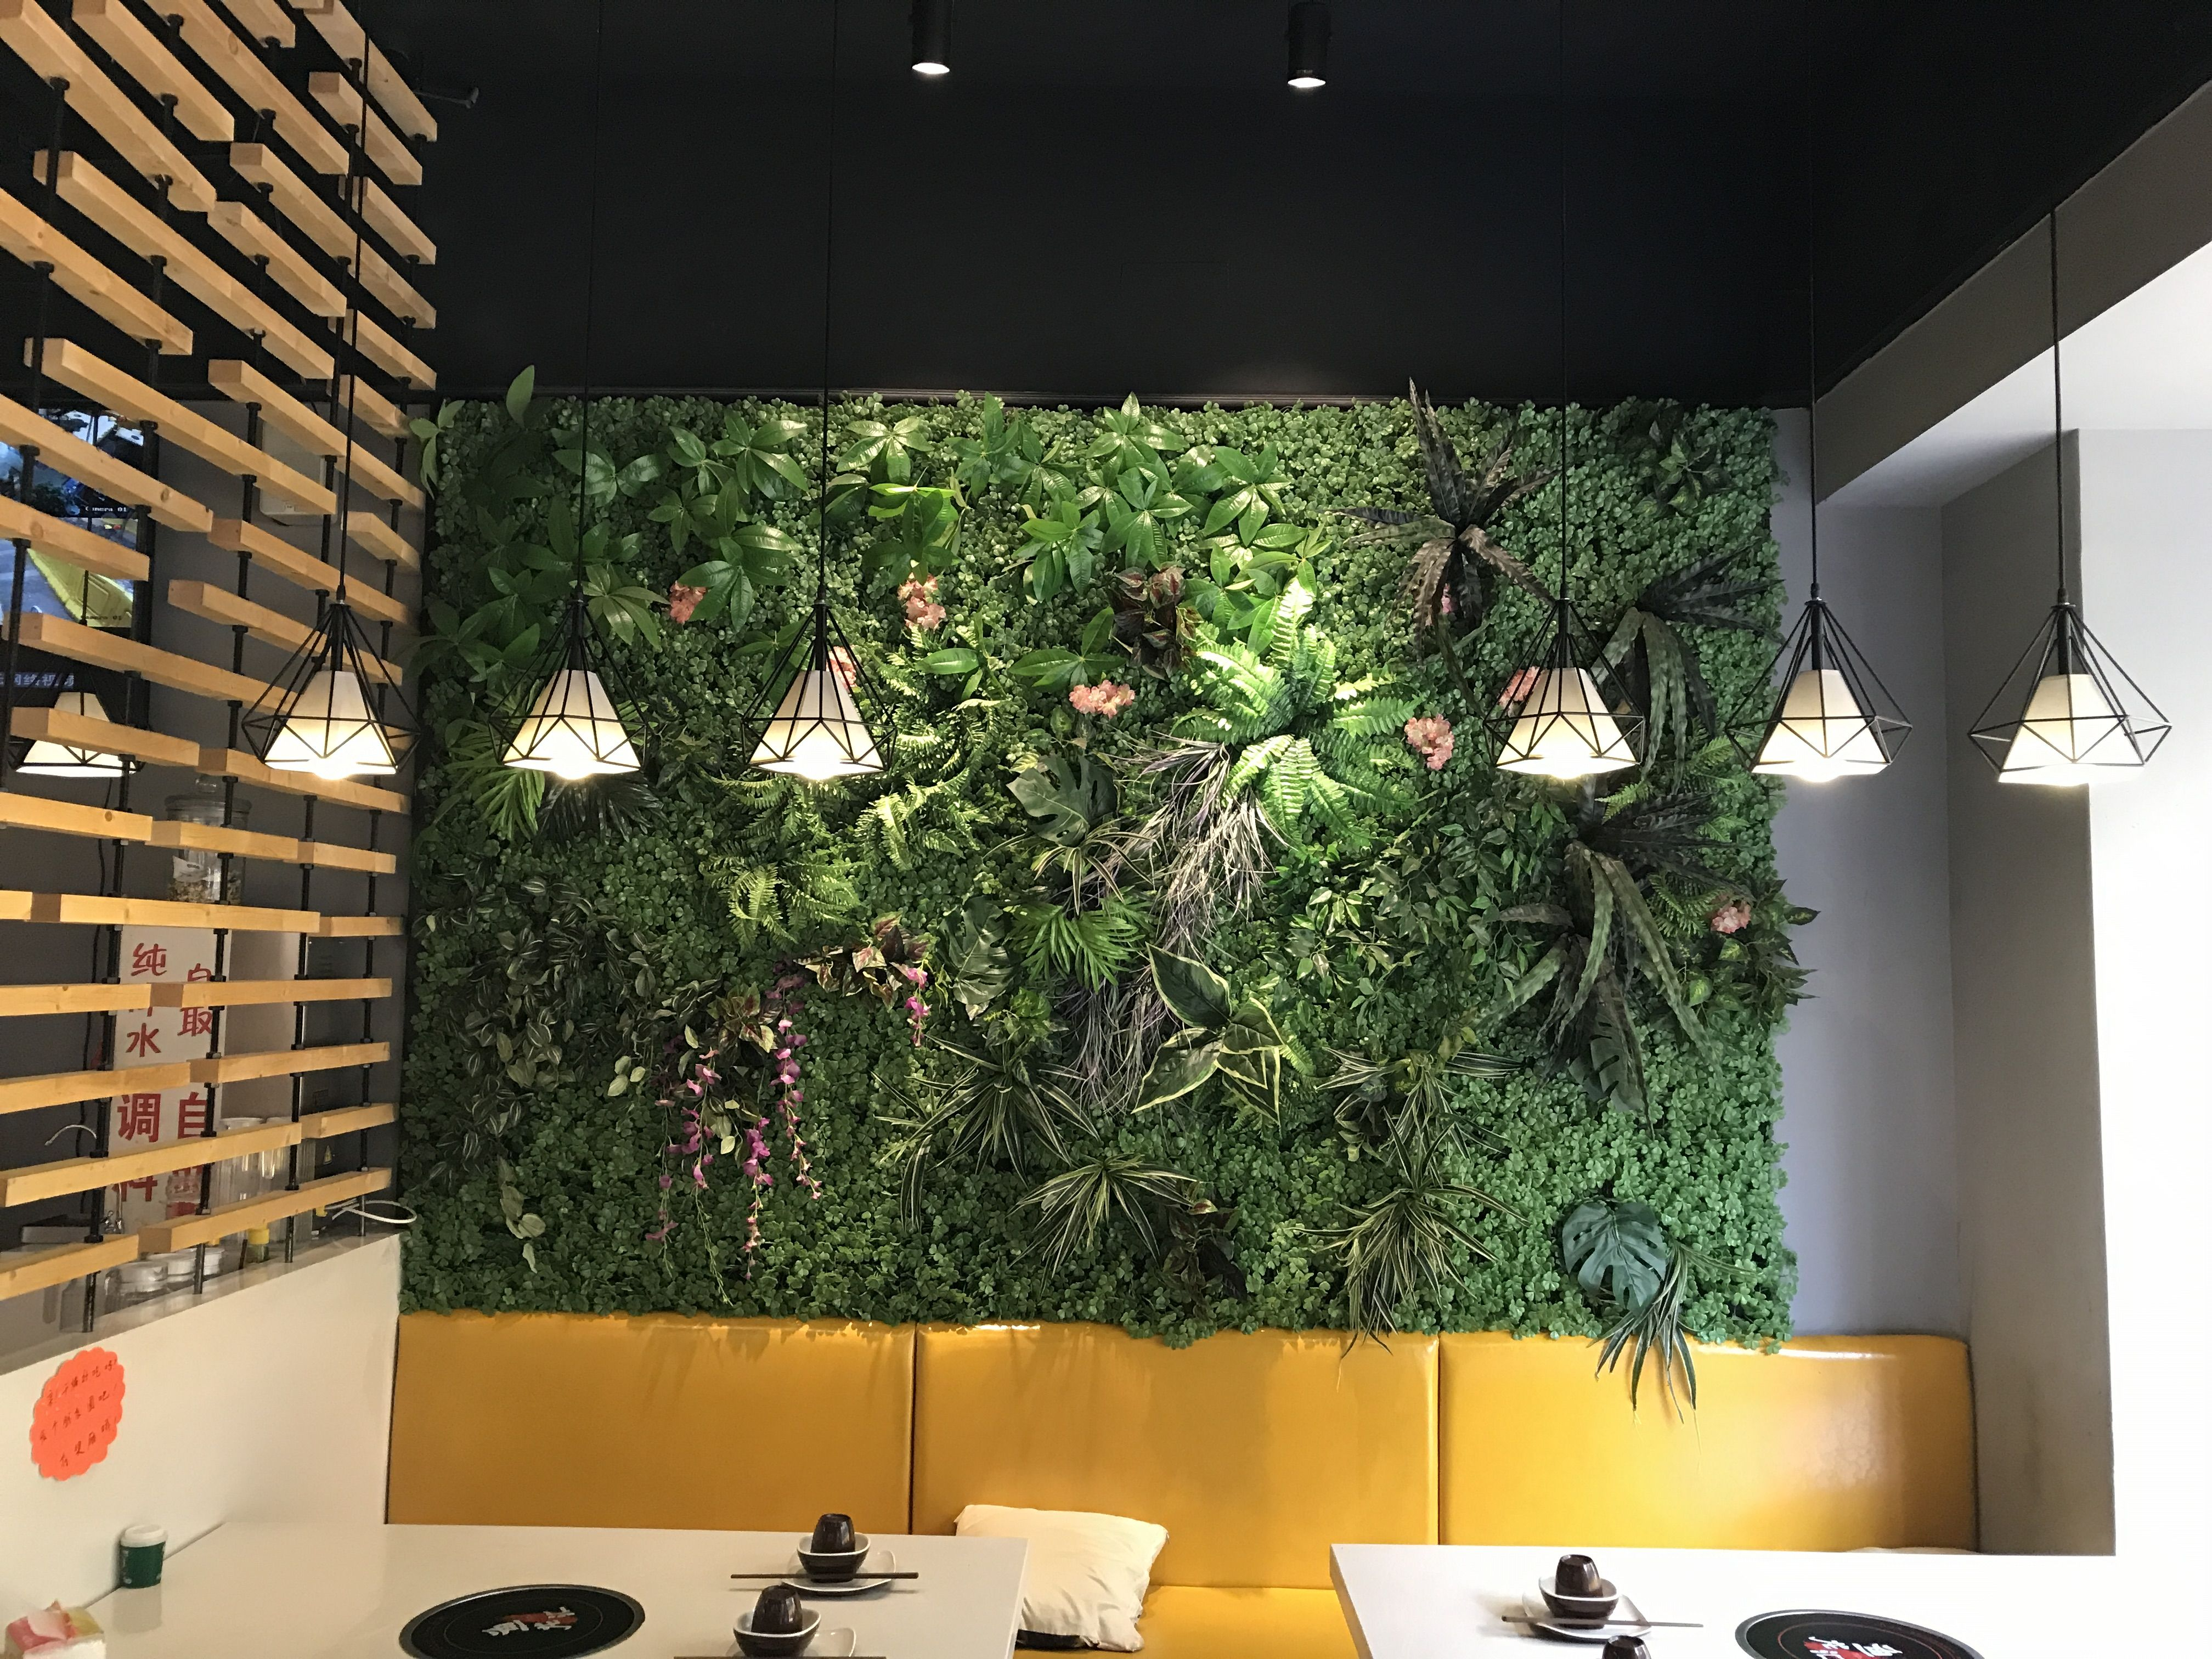 Check This Restaurant Interior Green Wall Decoration Idea Fully